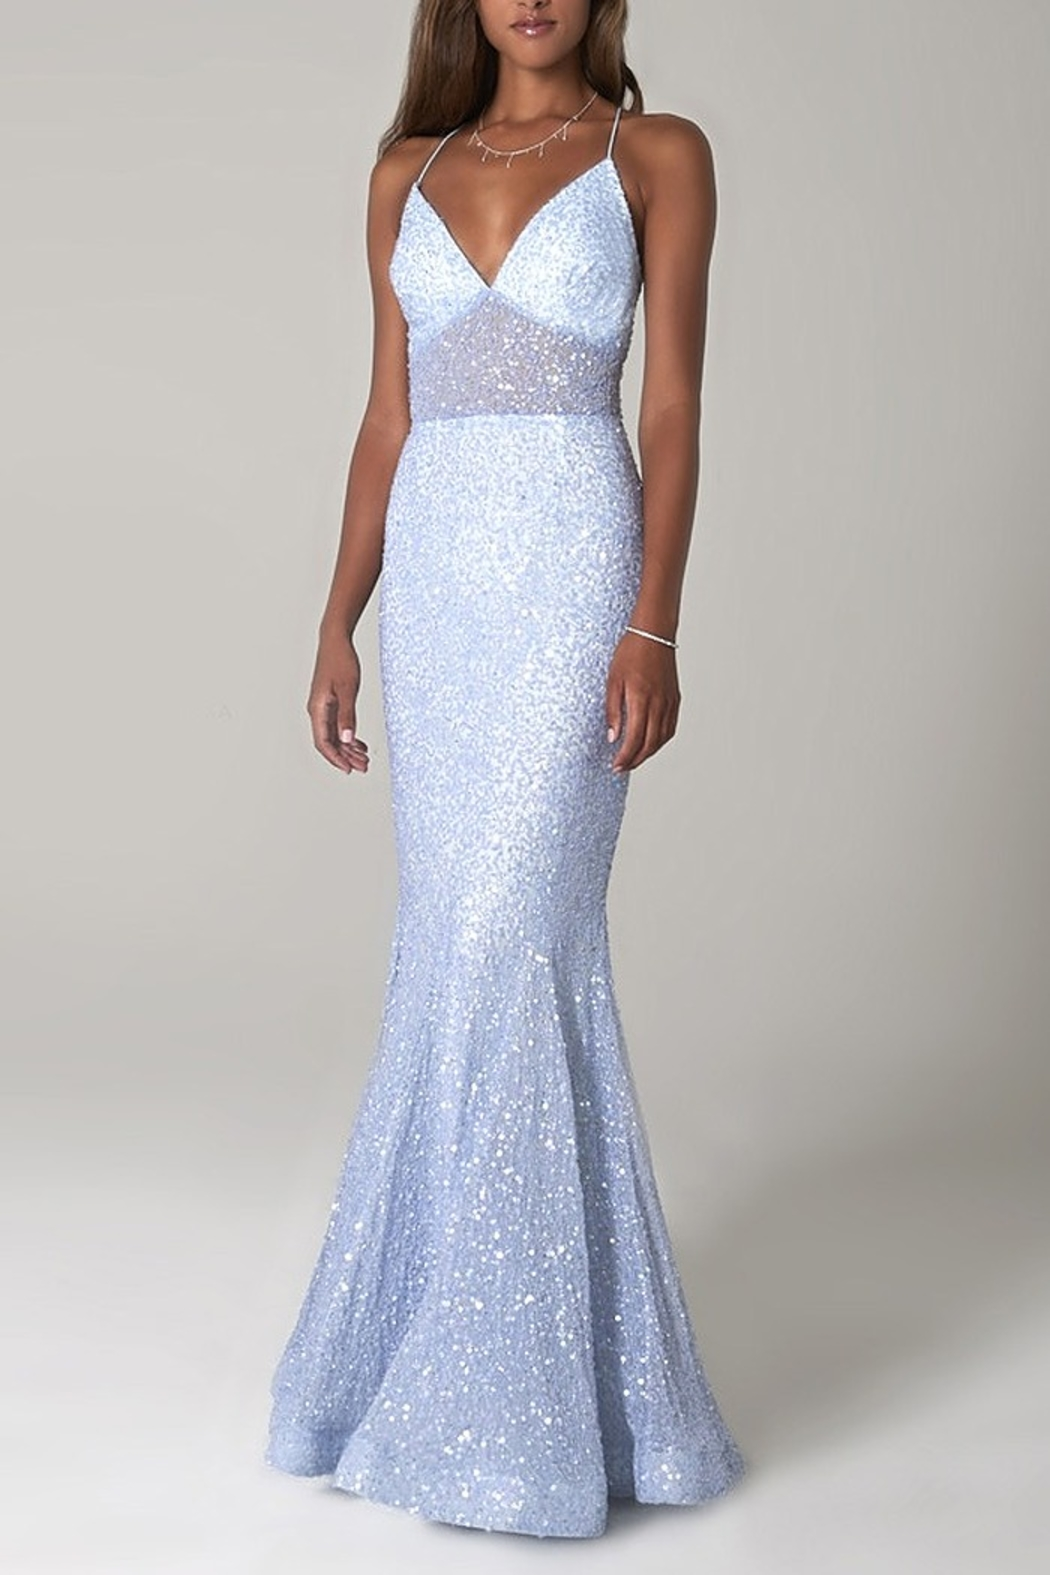 Scala Sequin Mermaid Gown with Sheer Bodice - Main Image